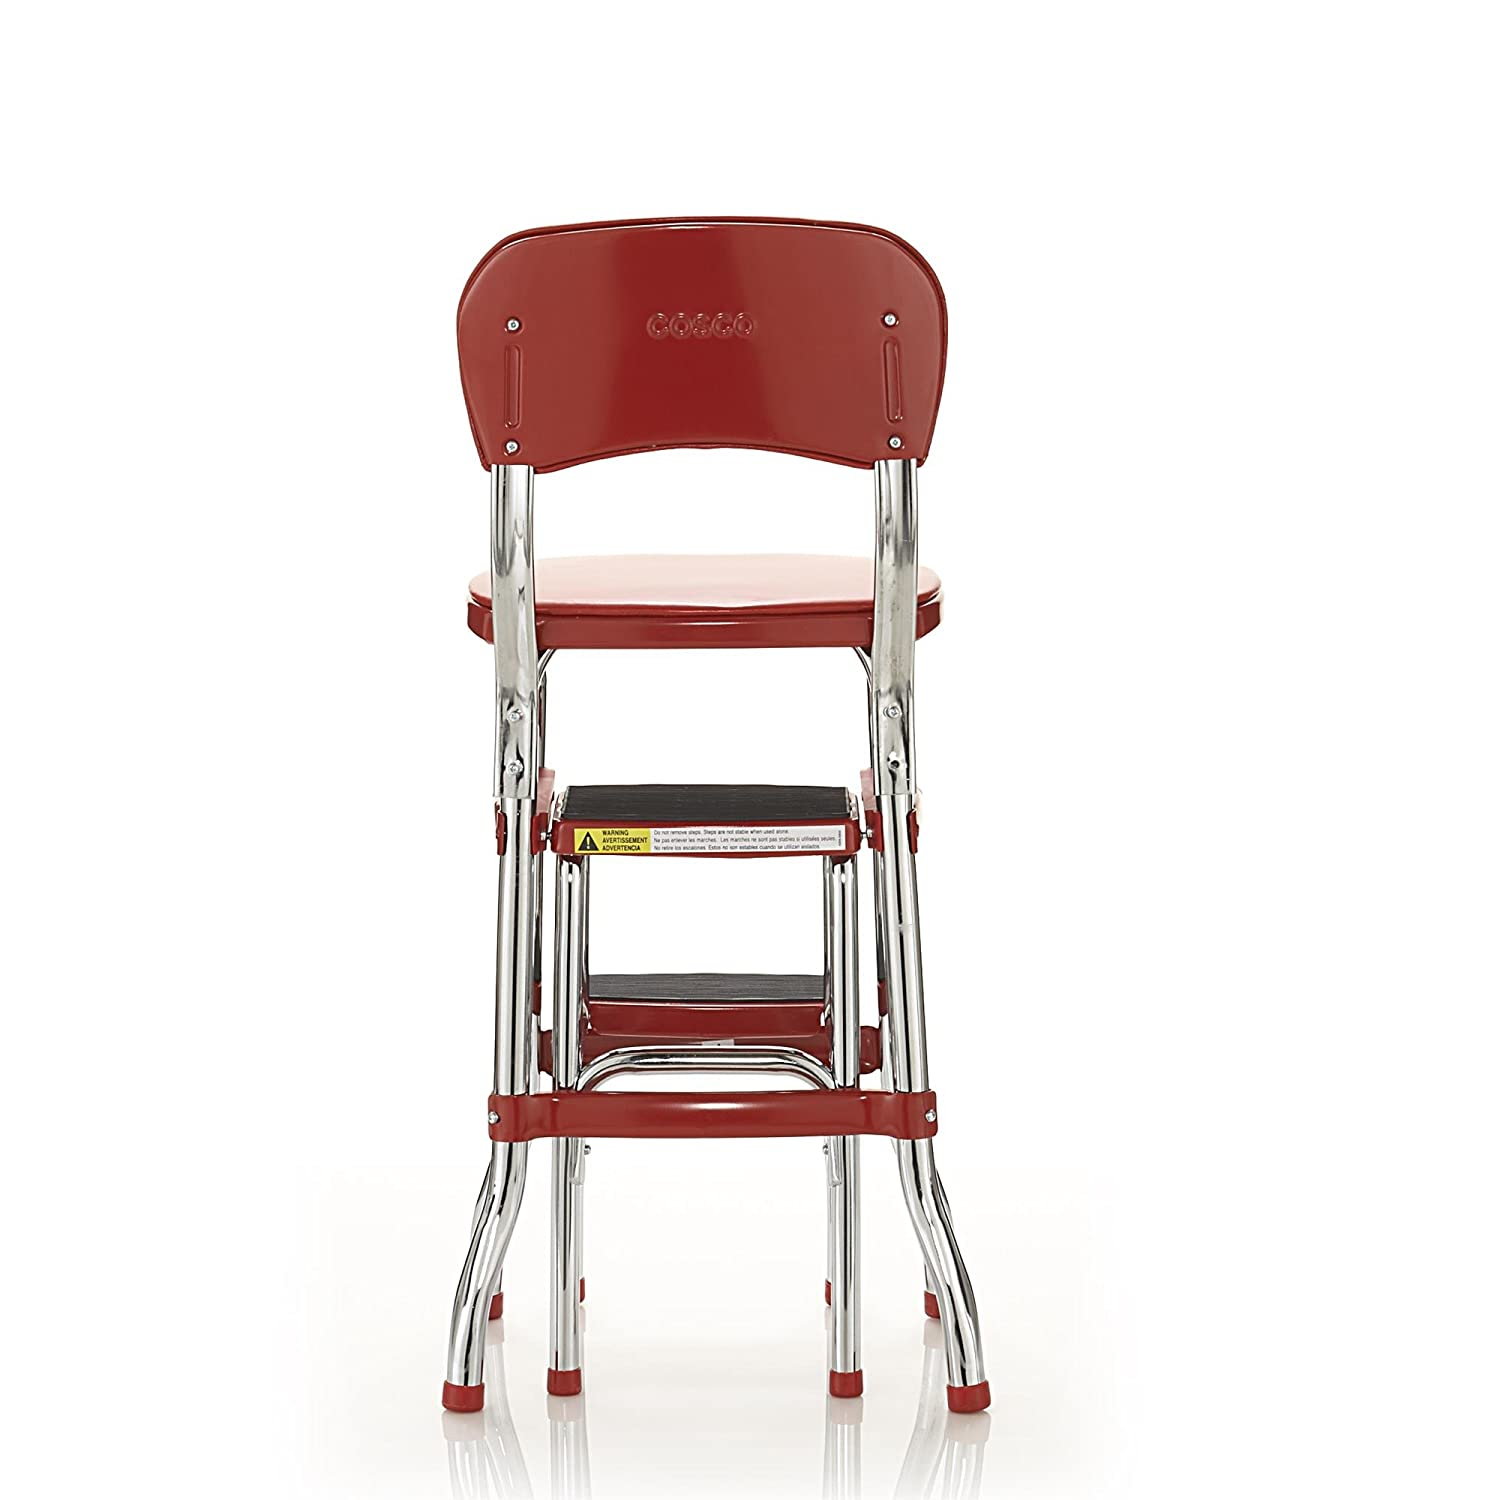 Attrayant Retro Counter Chair/Step Stool Red W/ Cushioned Seat U0026 Back U0026 Chrome Finish